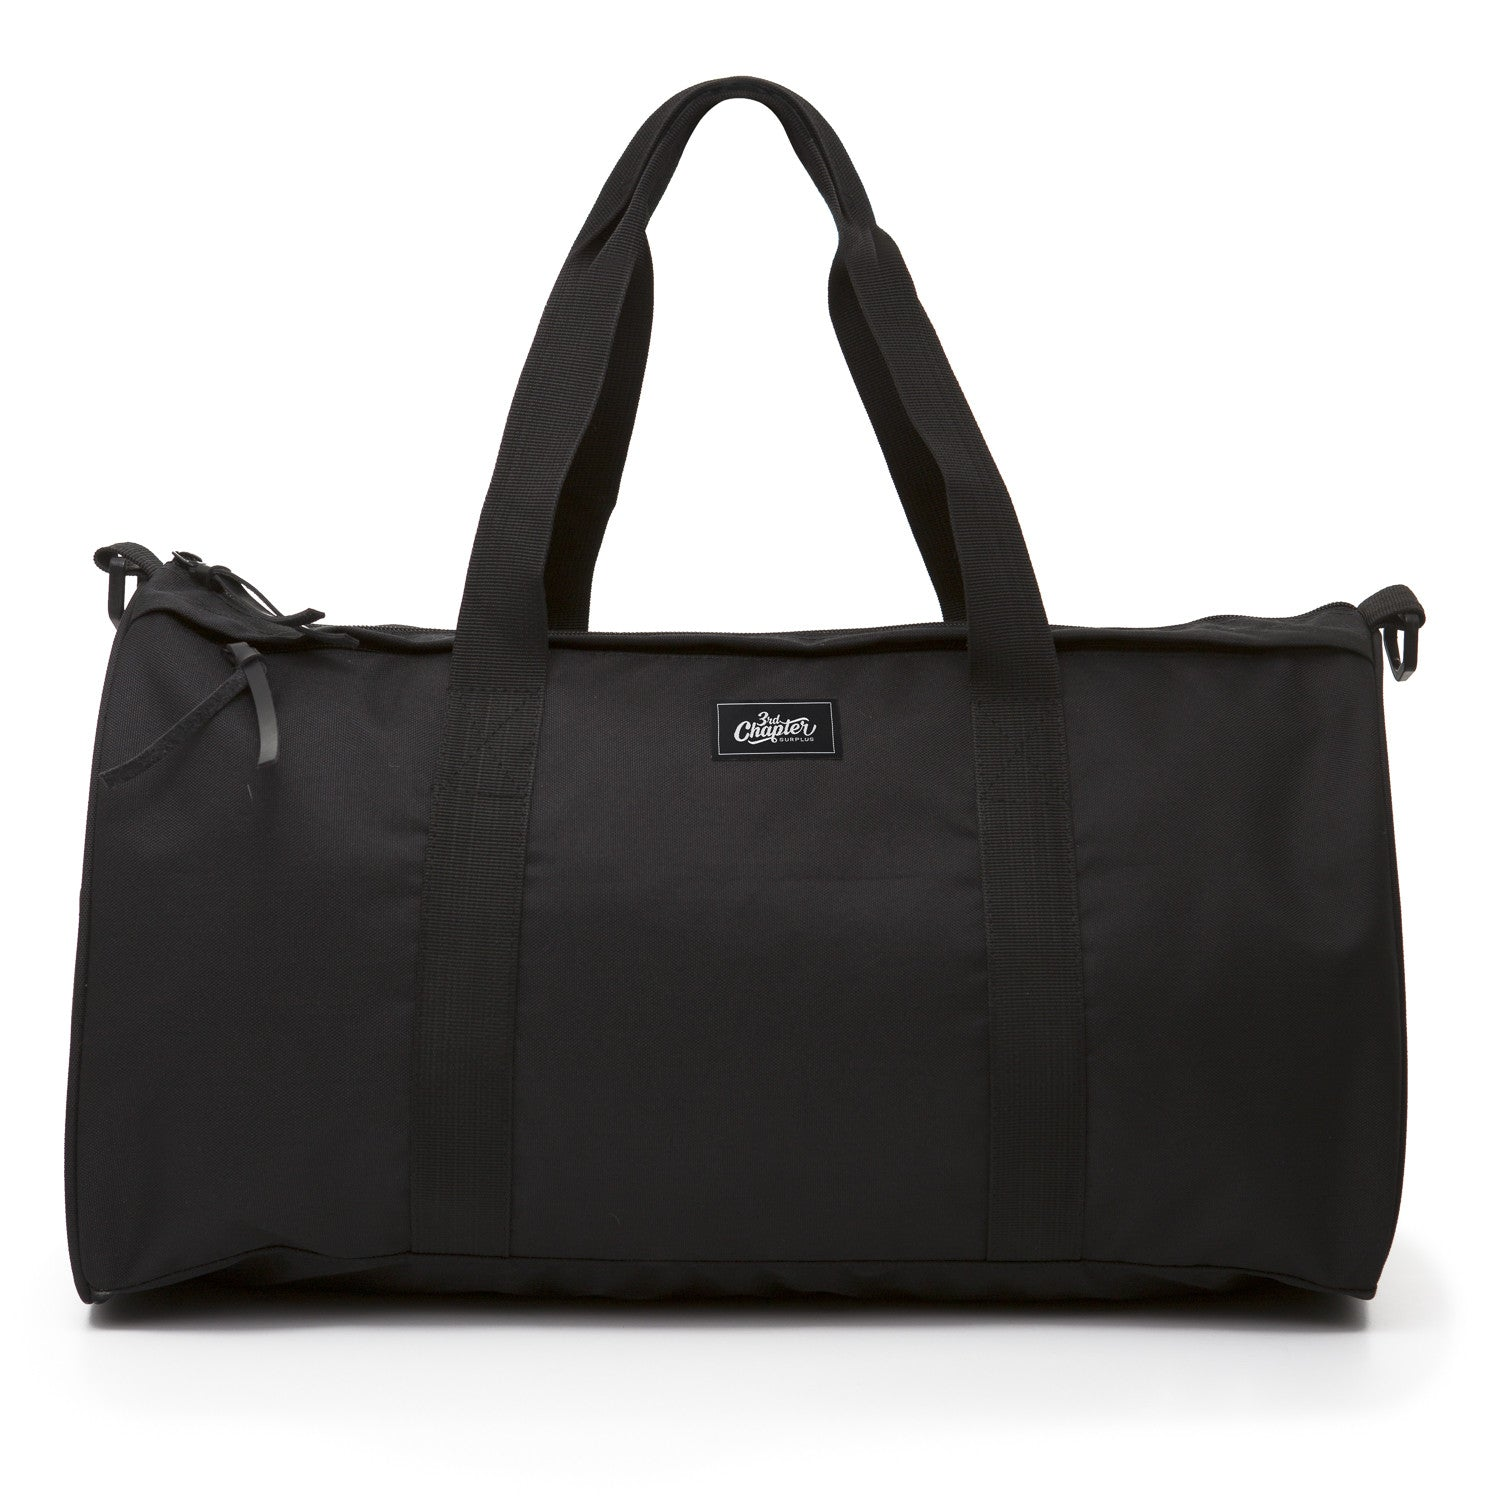 Six figure Duffel bag - 3rdchapter - 1